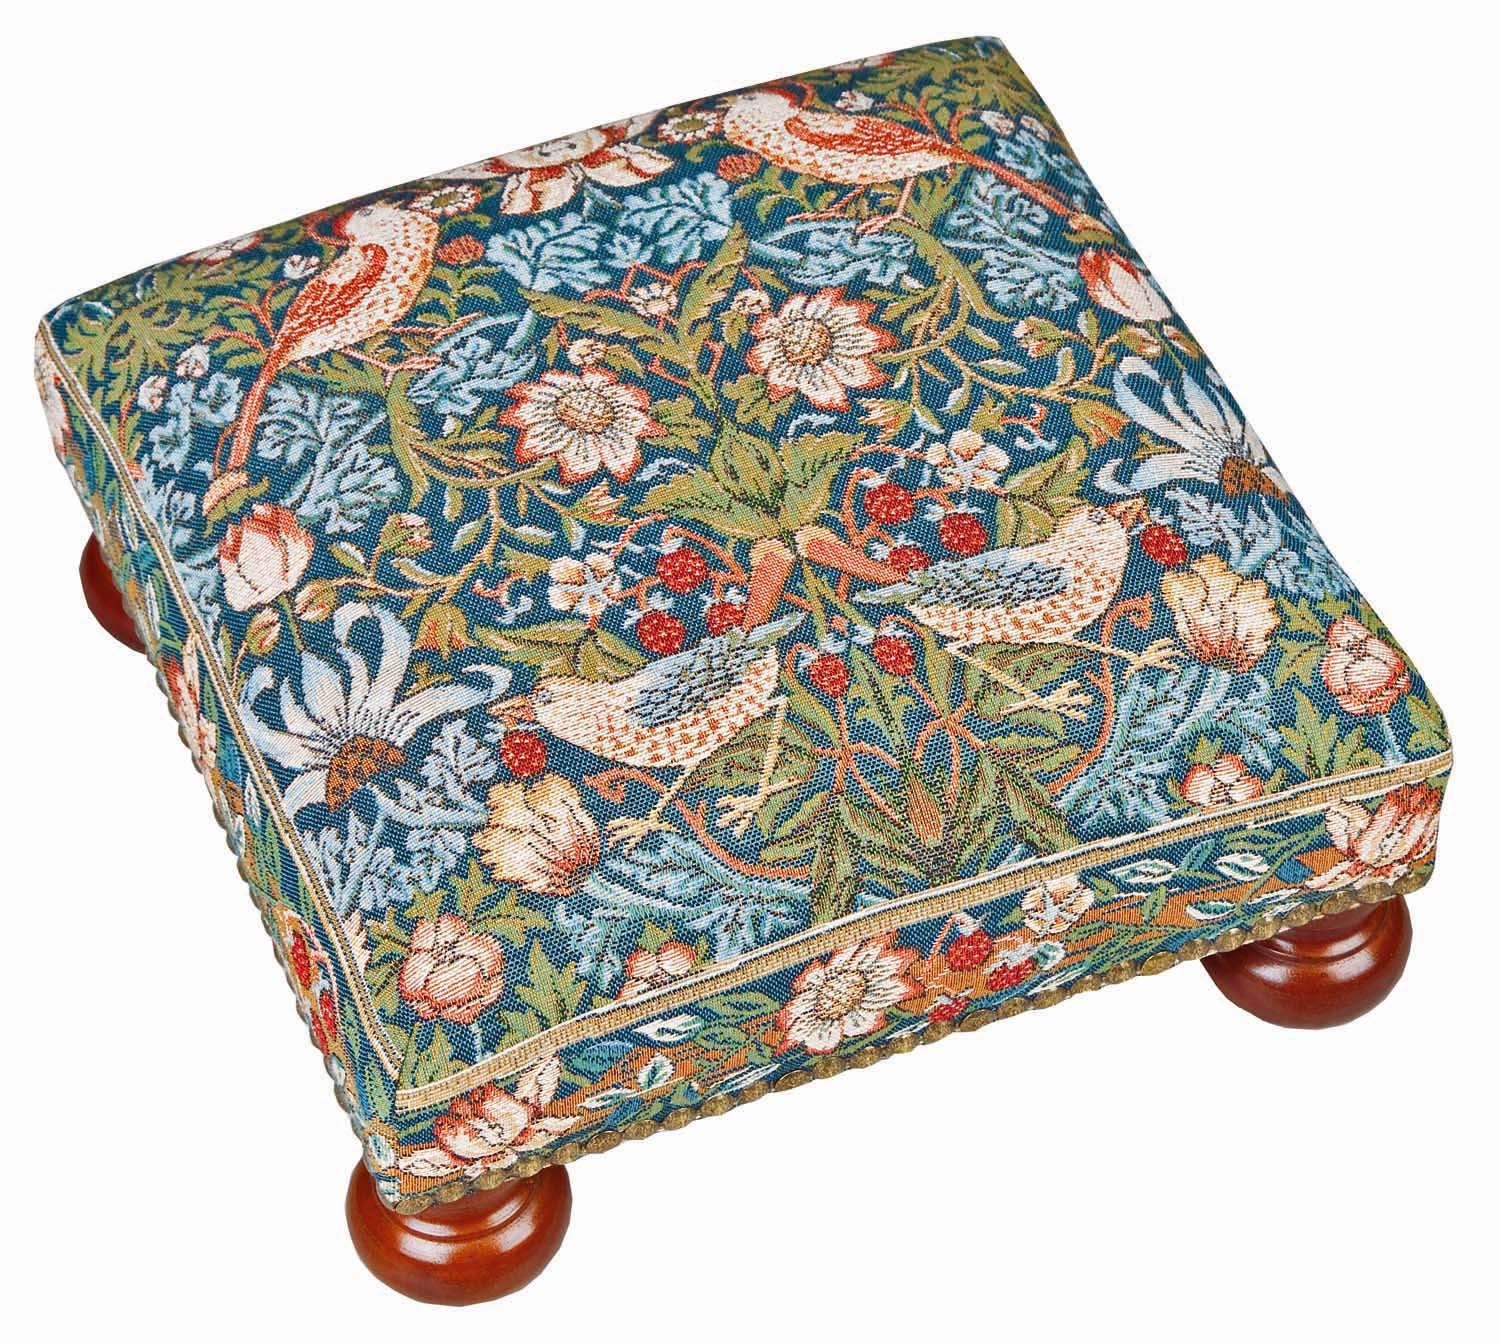 <p>Fine quality cotton jacquard tapestry footstool in William Morris Strawberry Thief design.</p>